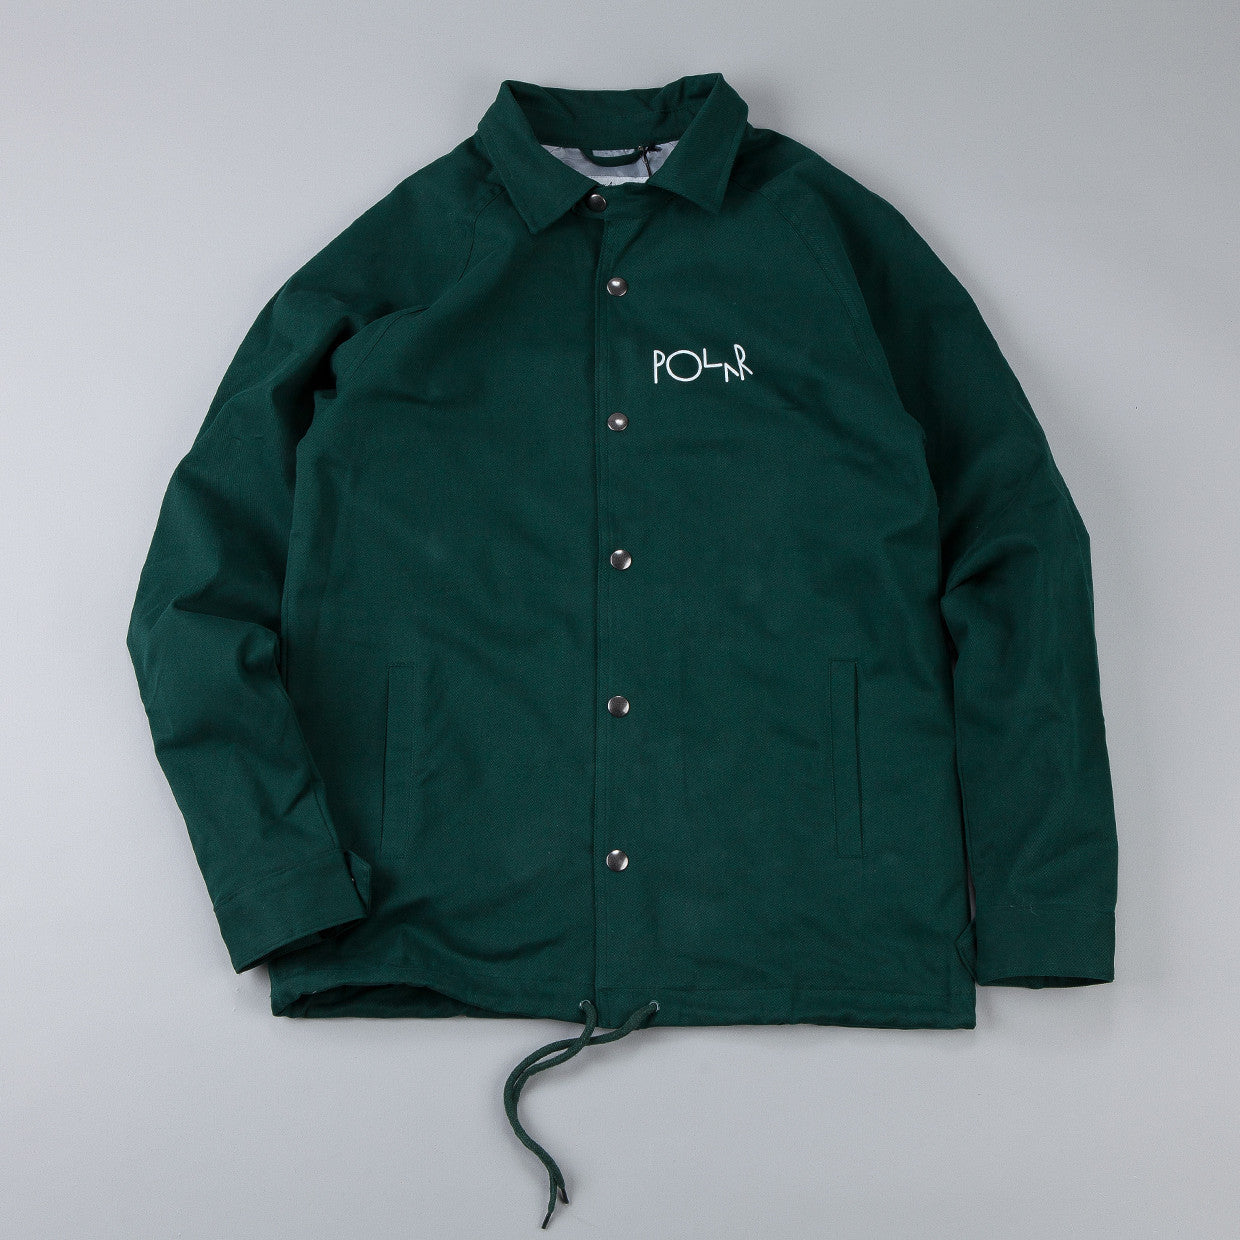 Polar Stroke Logo Coach Jacket Green